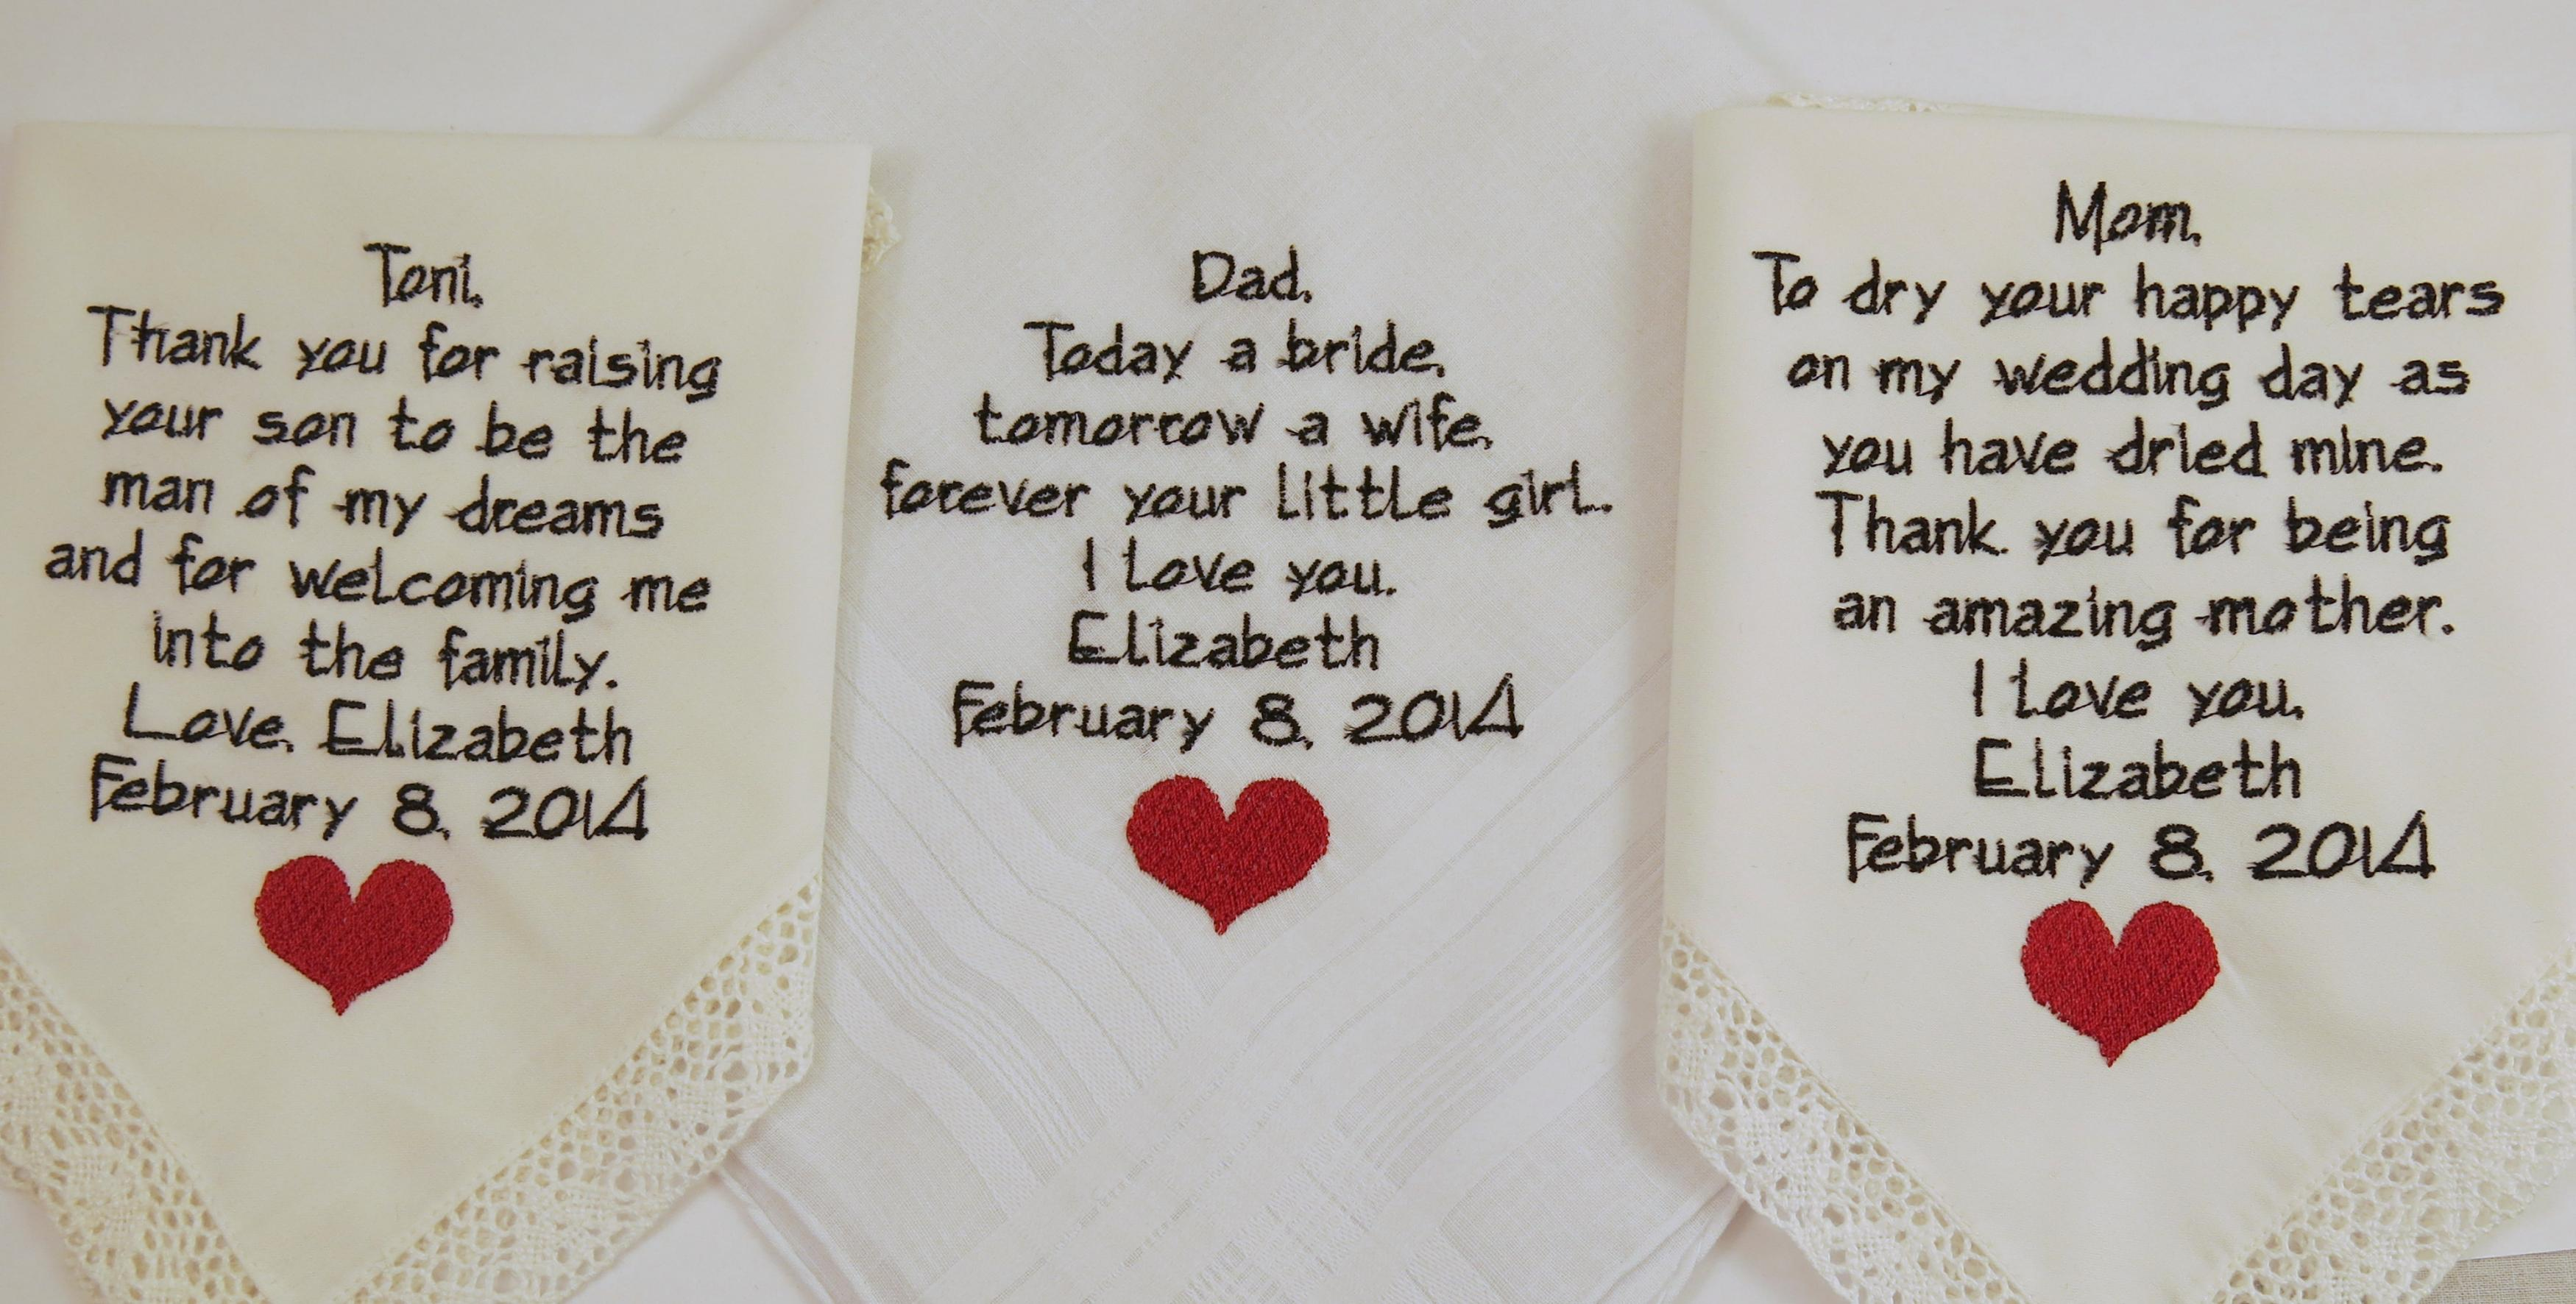 Mother Father Embroidered Wedding Hankerchiefs Gift Poem Heart In Law Marriage 3 Pack